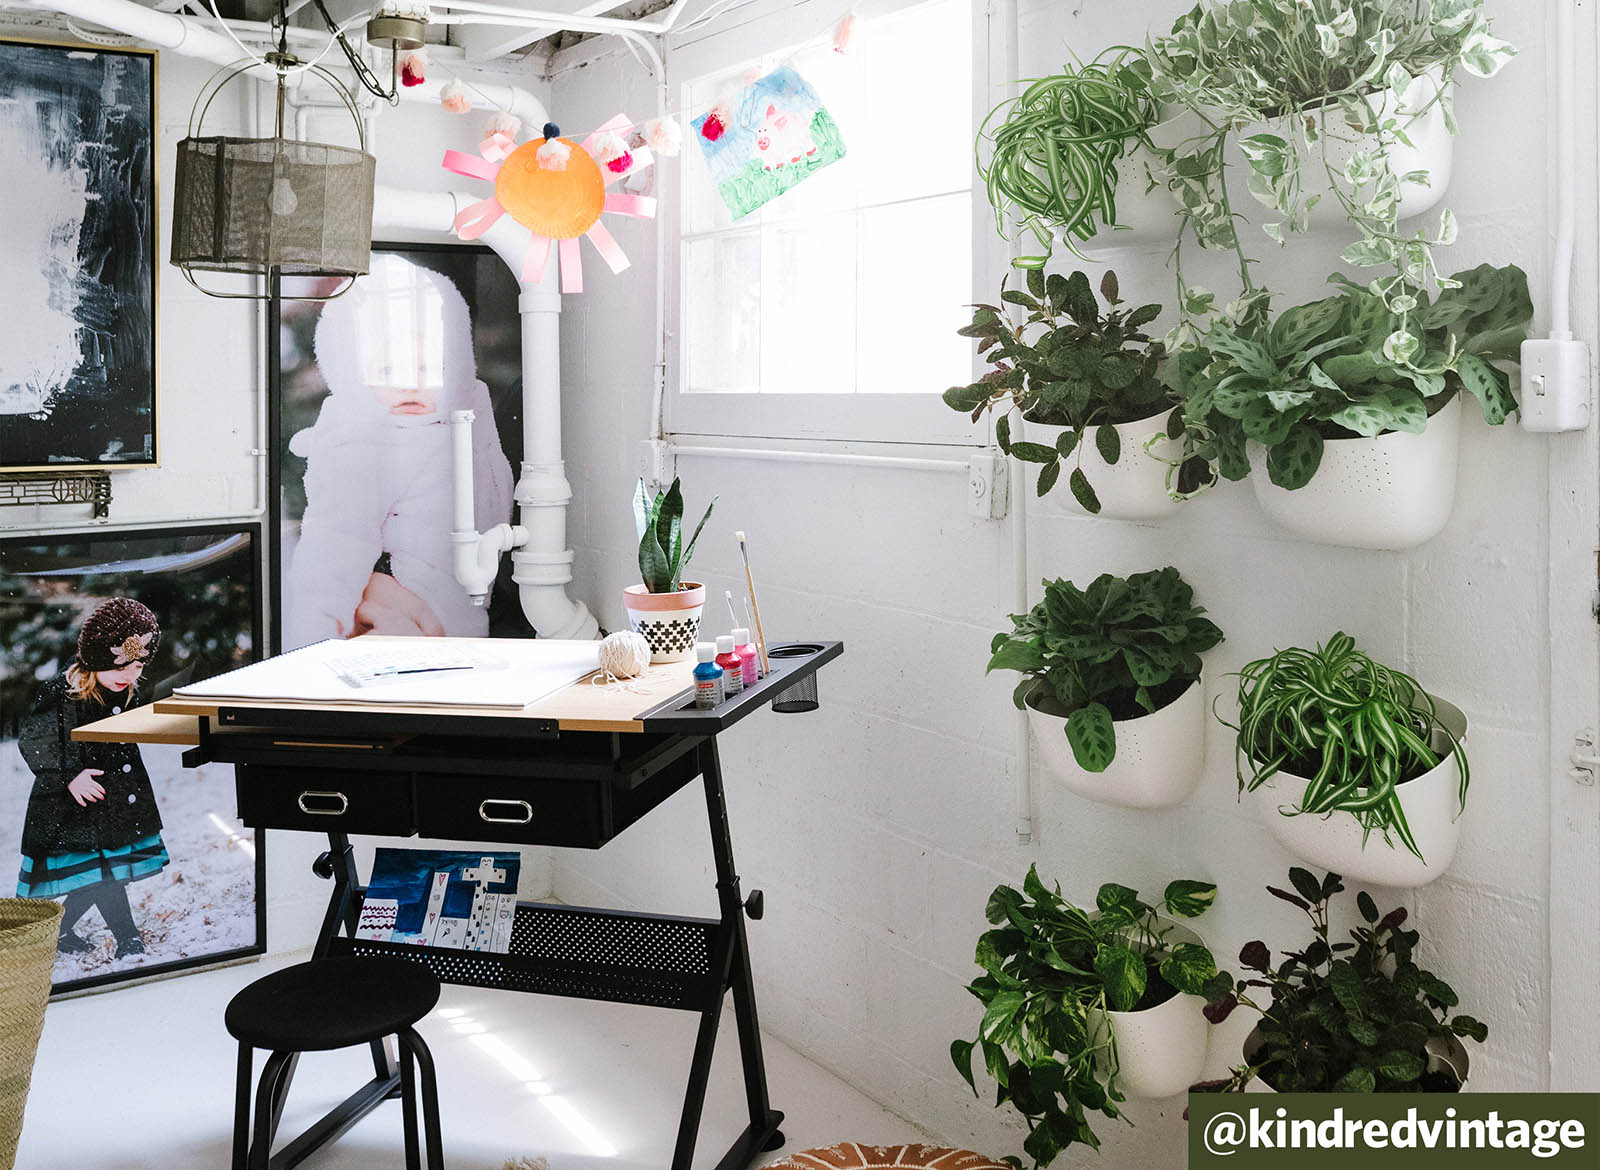 Arts and Plants: Utility Room Remodel by @kindredvintage